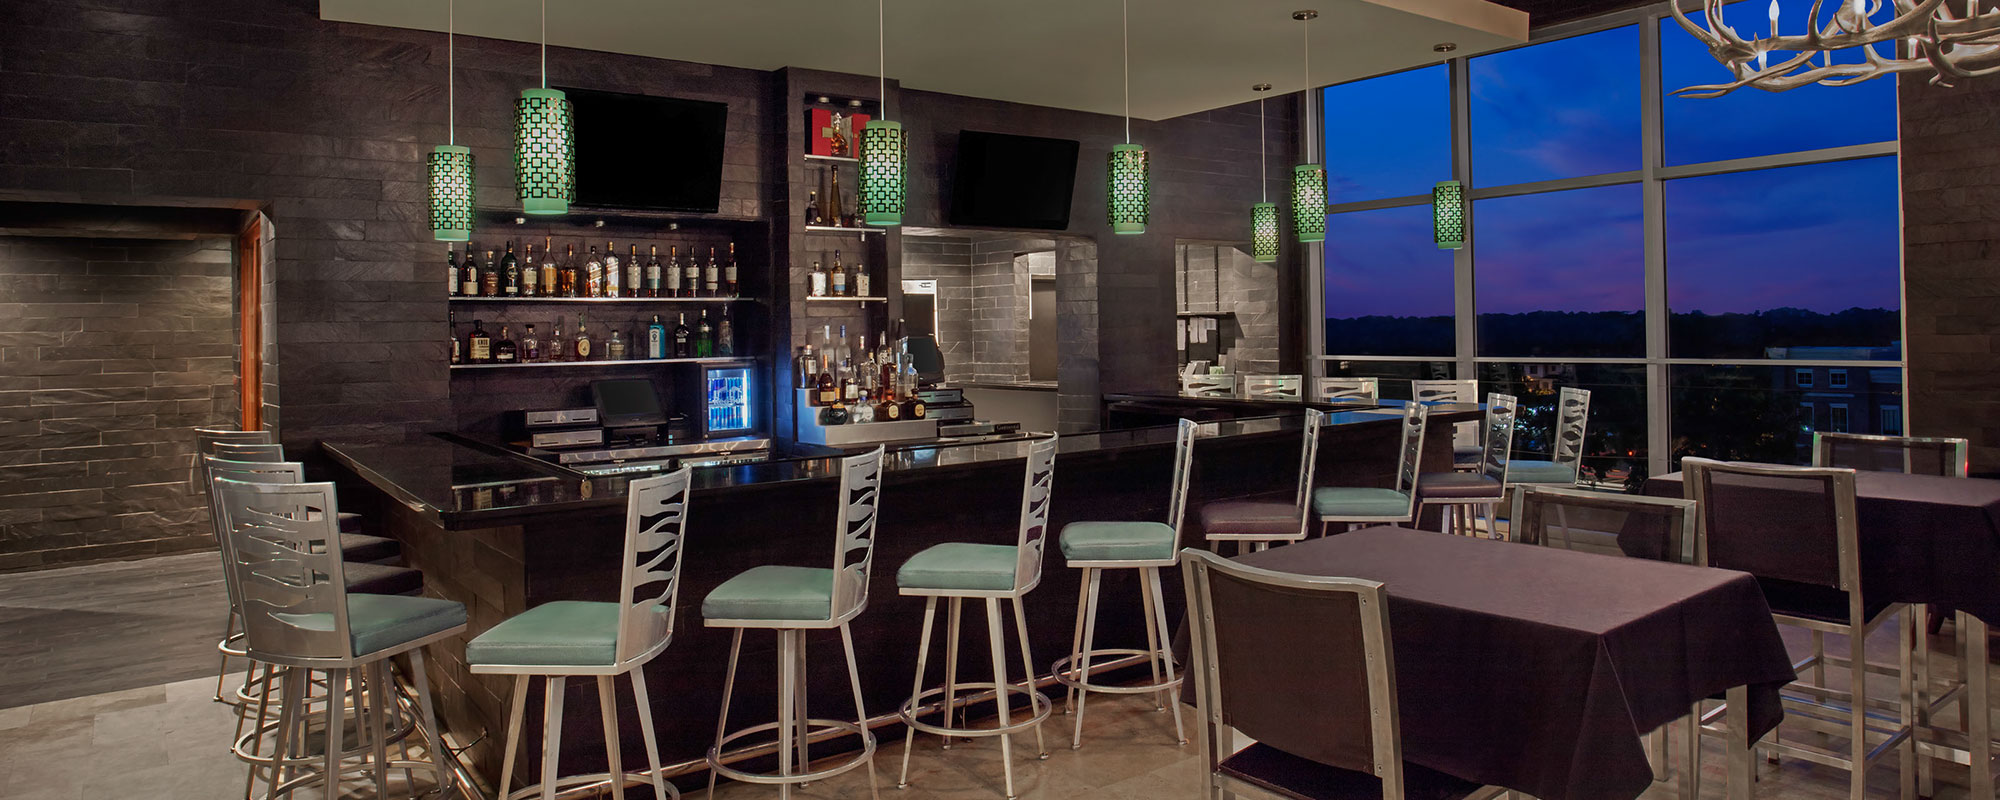 Level 8 restaurant gallery image 01